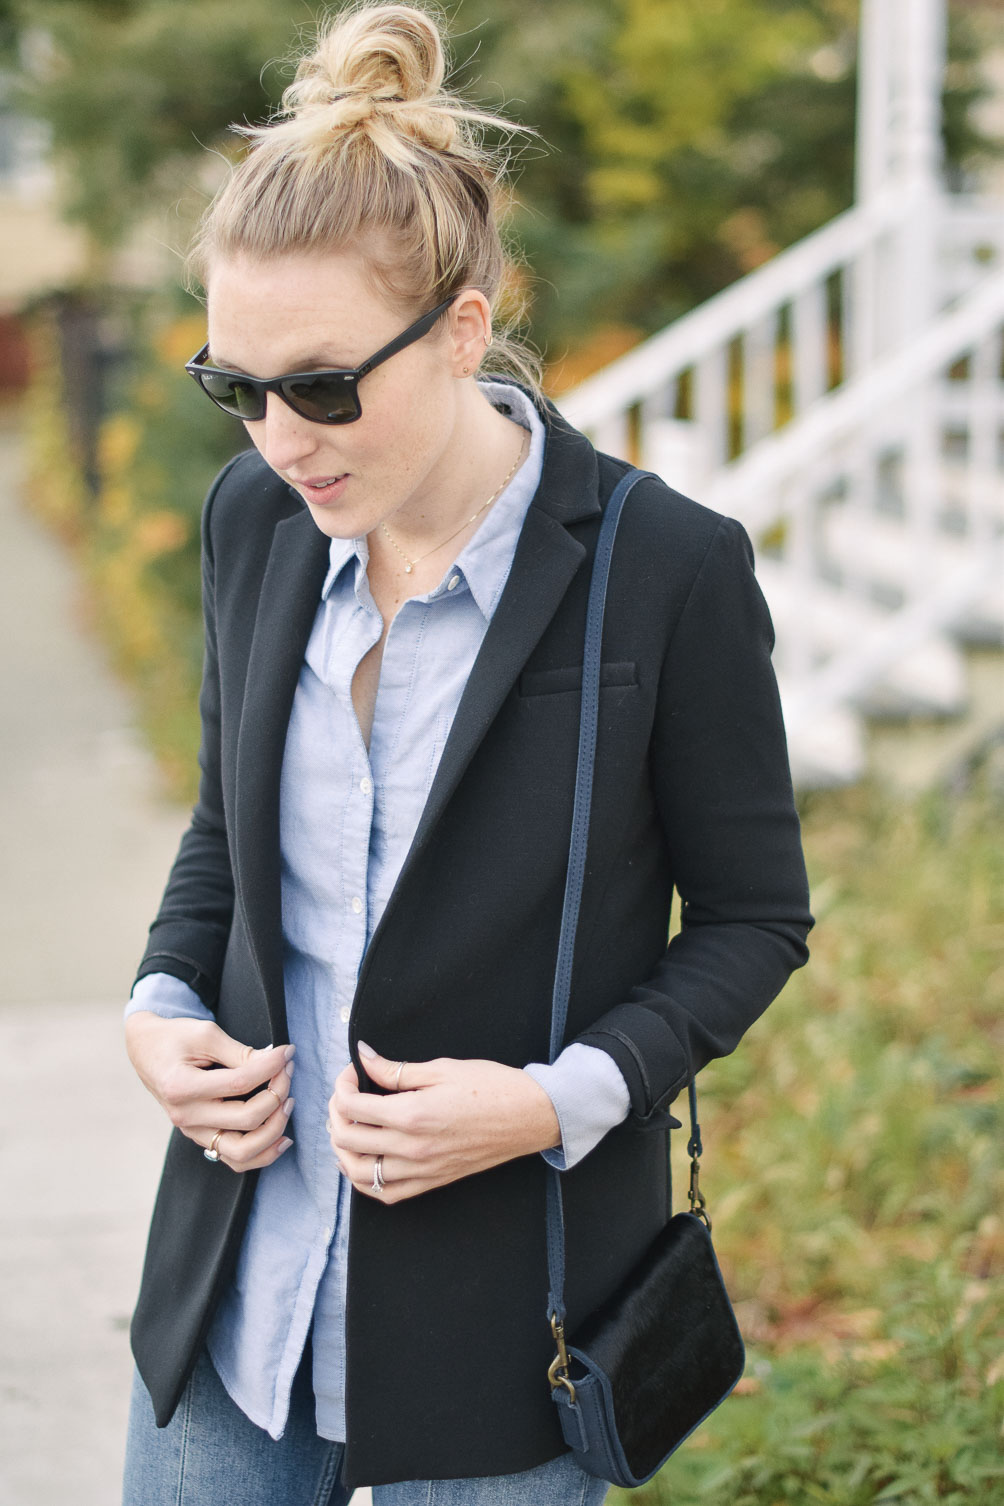 styling a fall blazer outfit with blue jeans and an oxford shirt